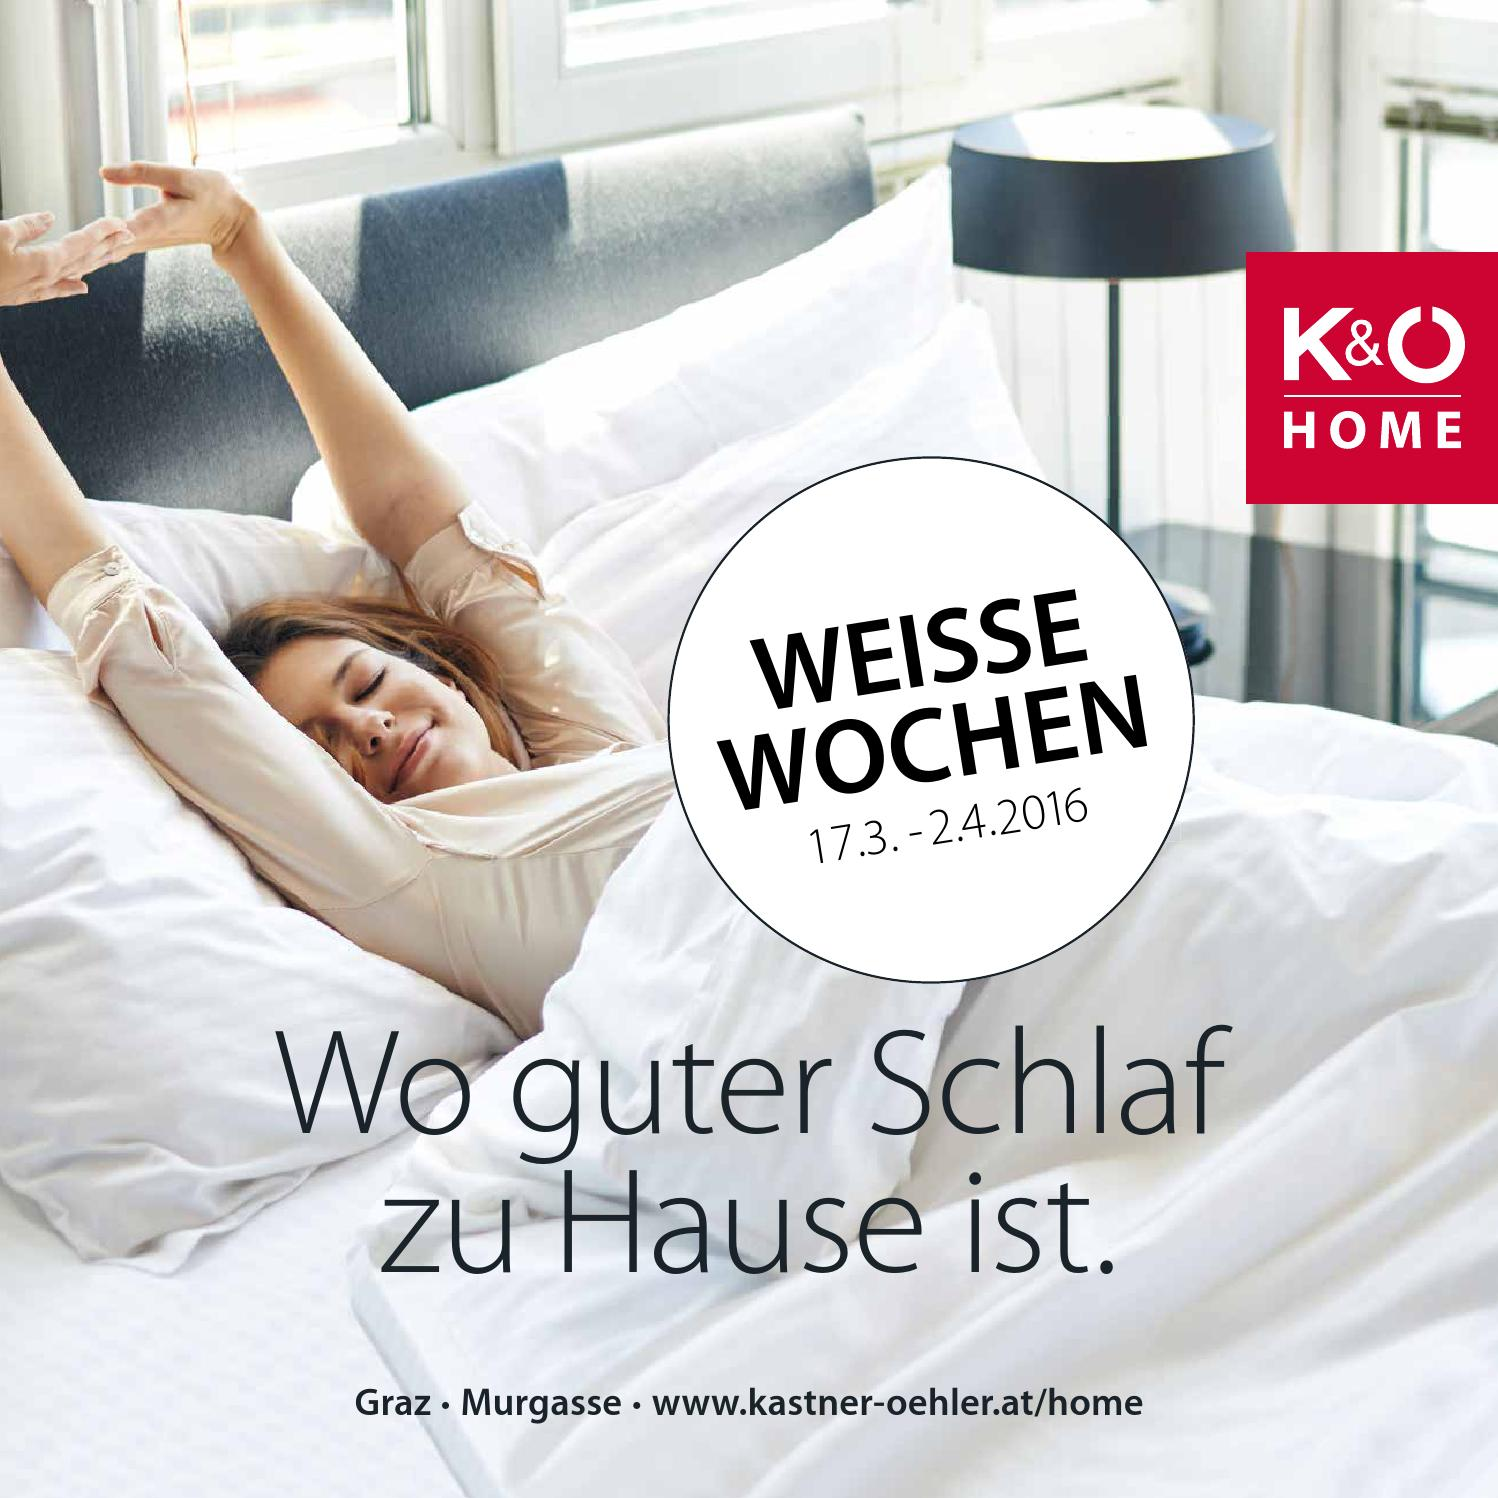 Billerbeck Baumwoll-decke Wash Cotton Uno Home Weiße Wochen Ss16 By Kastner Öhler Issuu